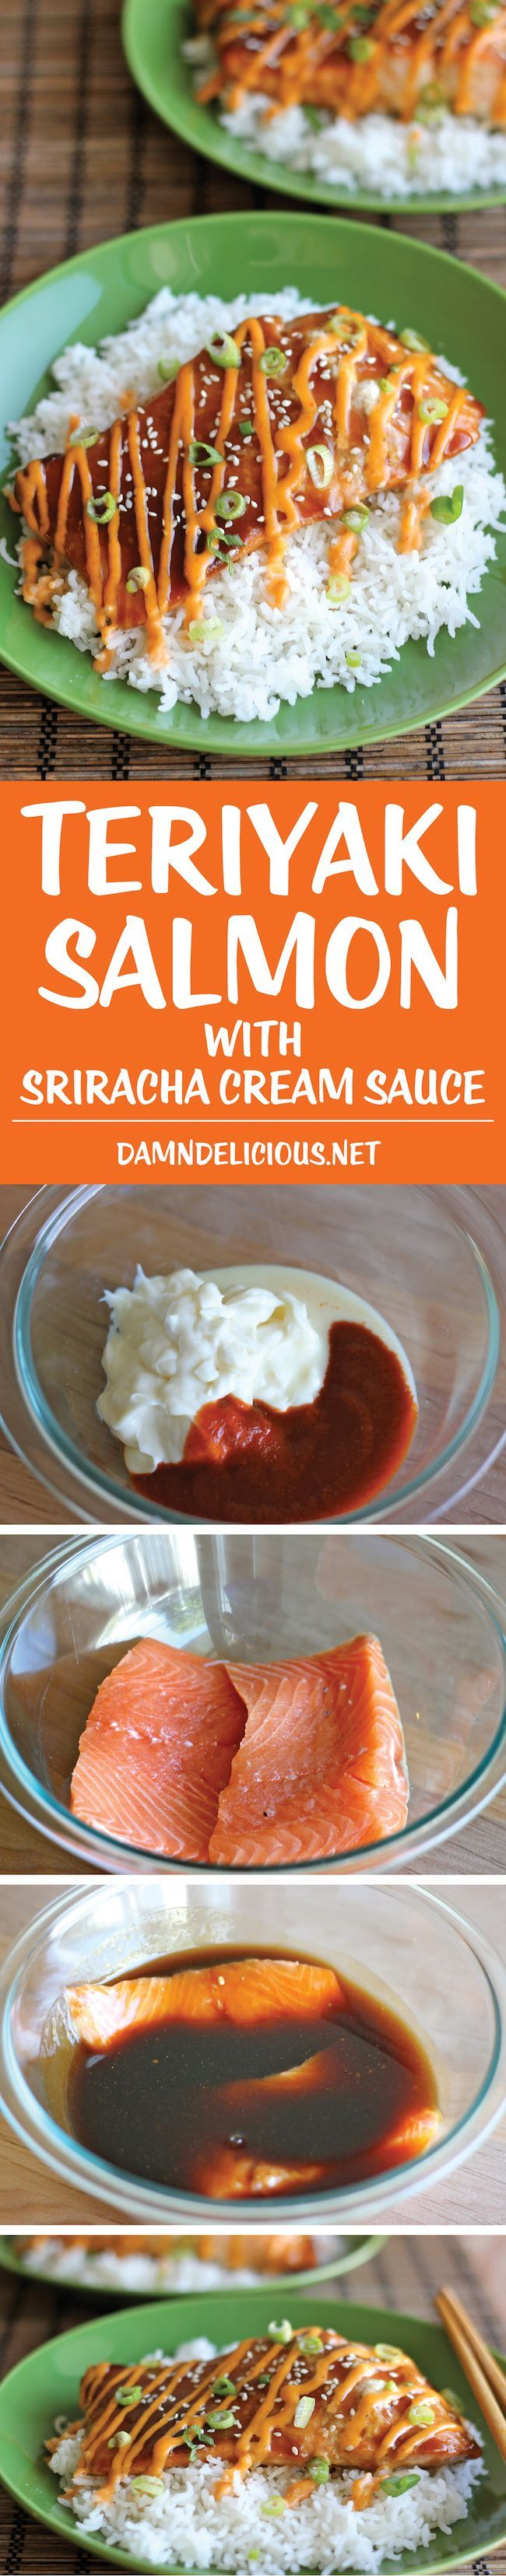 Teriyaki Salmon with Sriracha Cream Sauce - This is positively excellent. Made without the high-cal cream sauce, and it was great on its own!